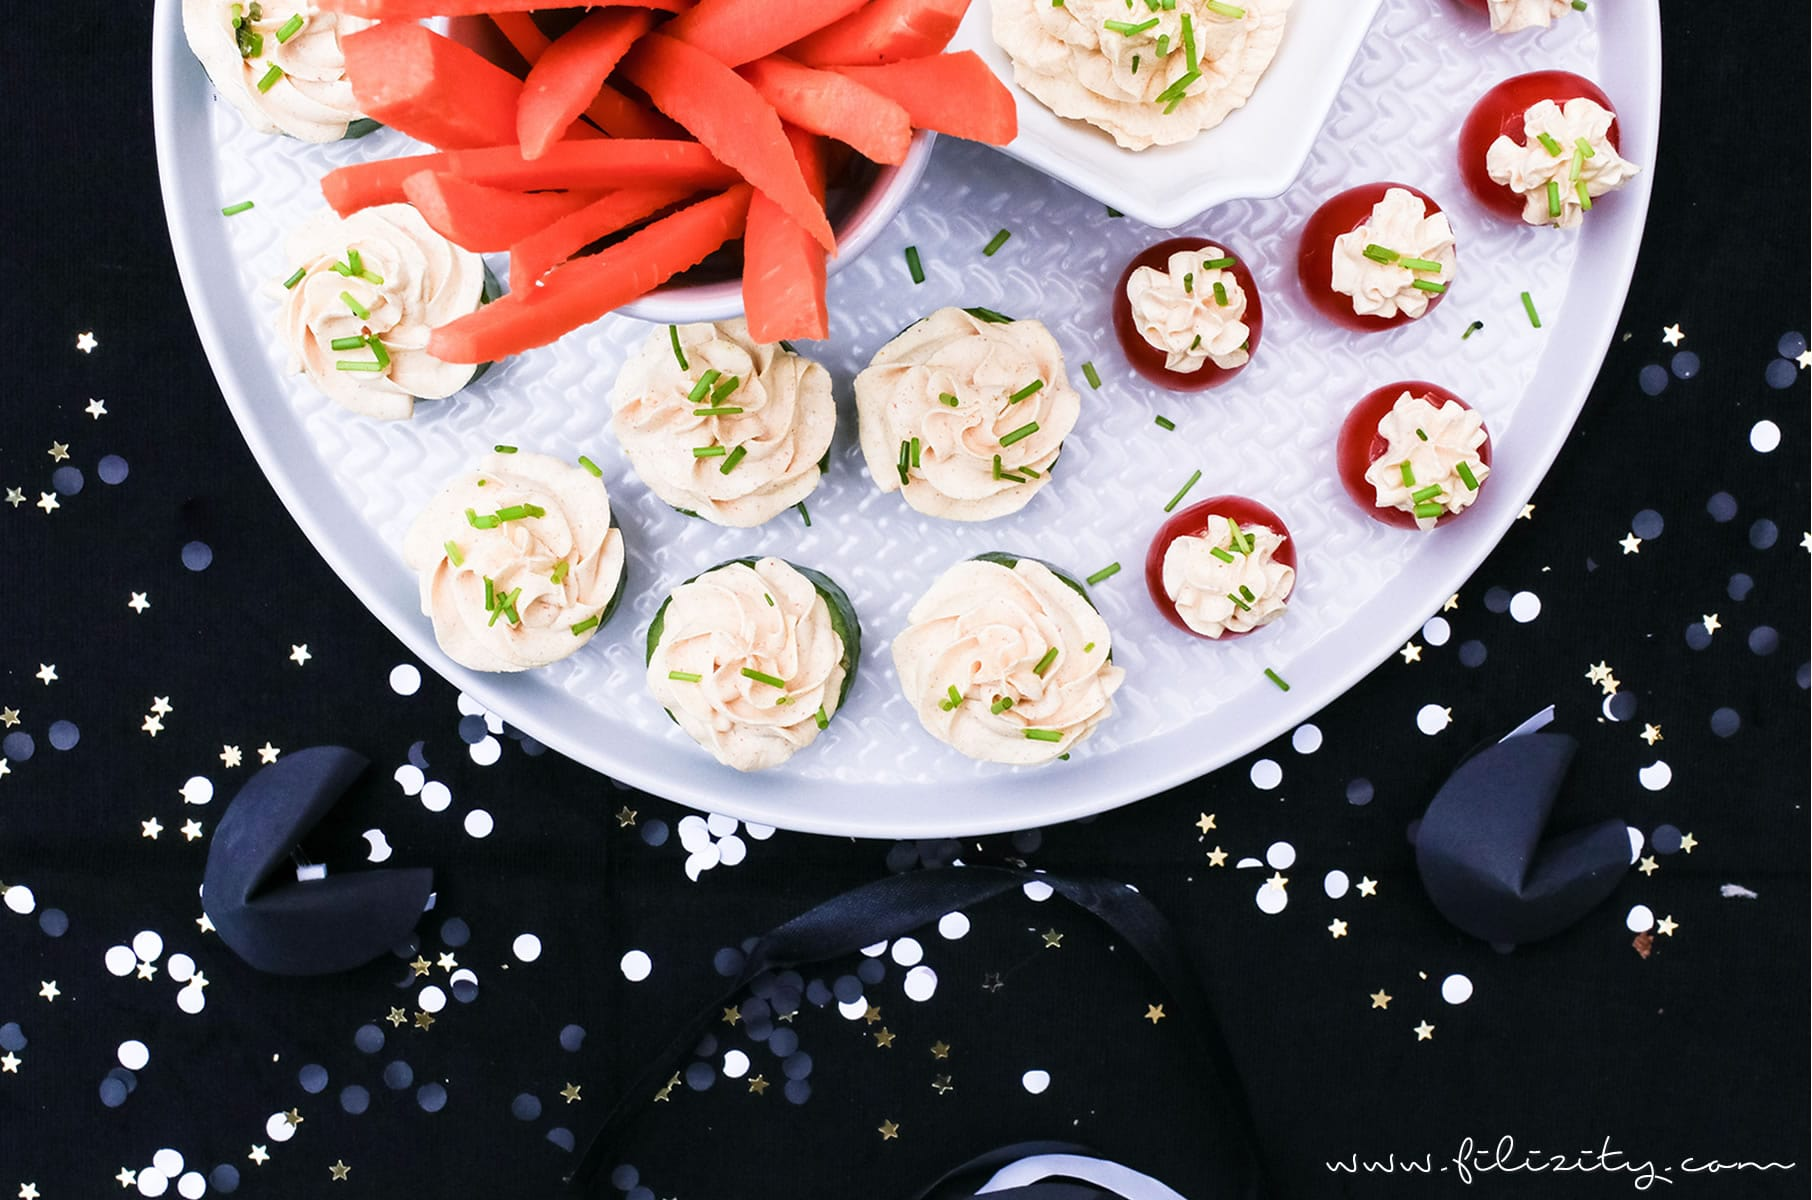 Silvester-Rezept: Fingerfood & Curry-Dip für's Party-Buffet | Filizity.com | Food-Blog aus dem Rheinland #silvester #partyfood #party #fingerfood #nye